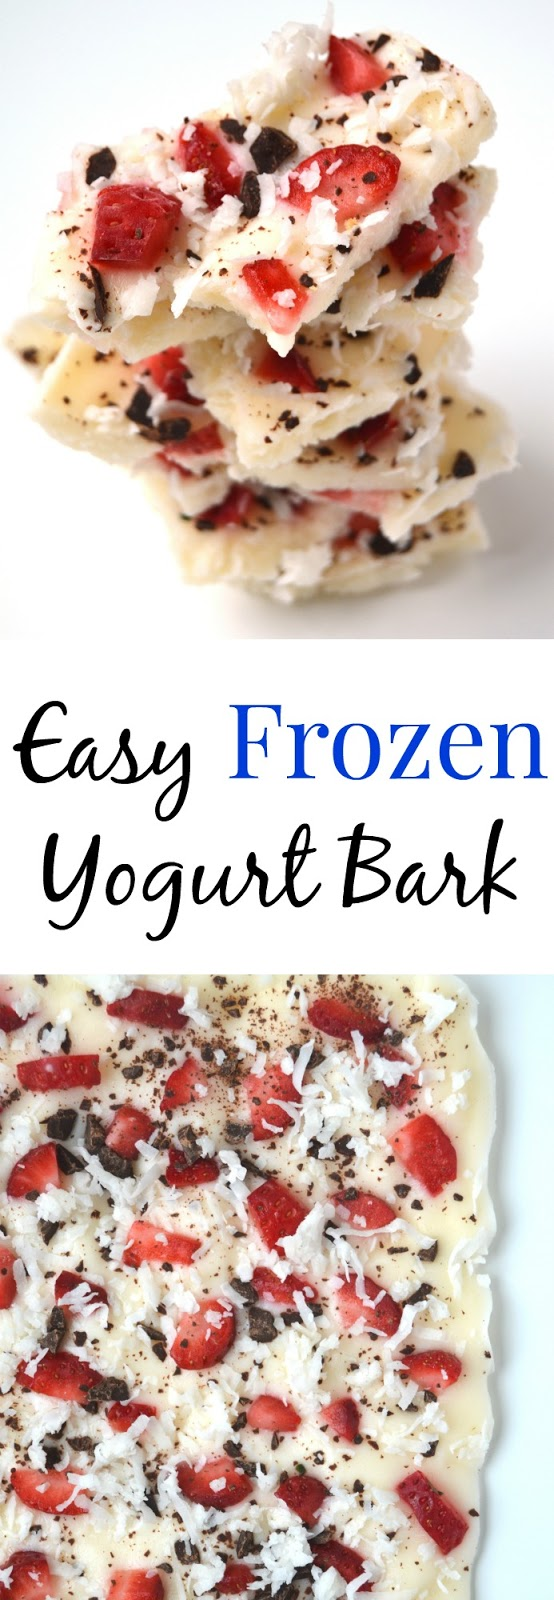 Frozen Yogurt Bark- easy, healthy and makes a great Valentine's Day dessert! www.nutritionistreviews.com